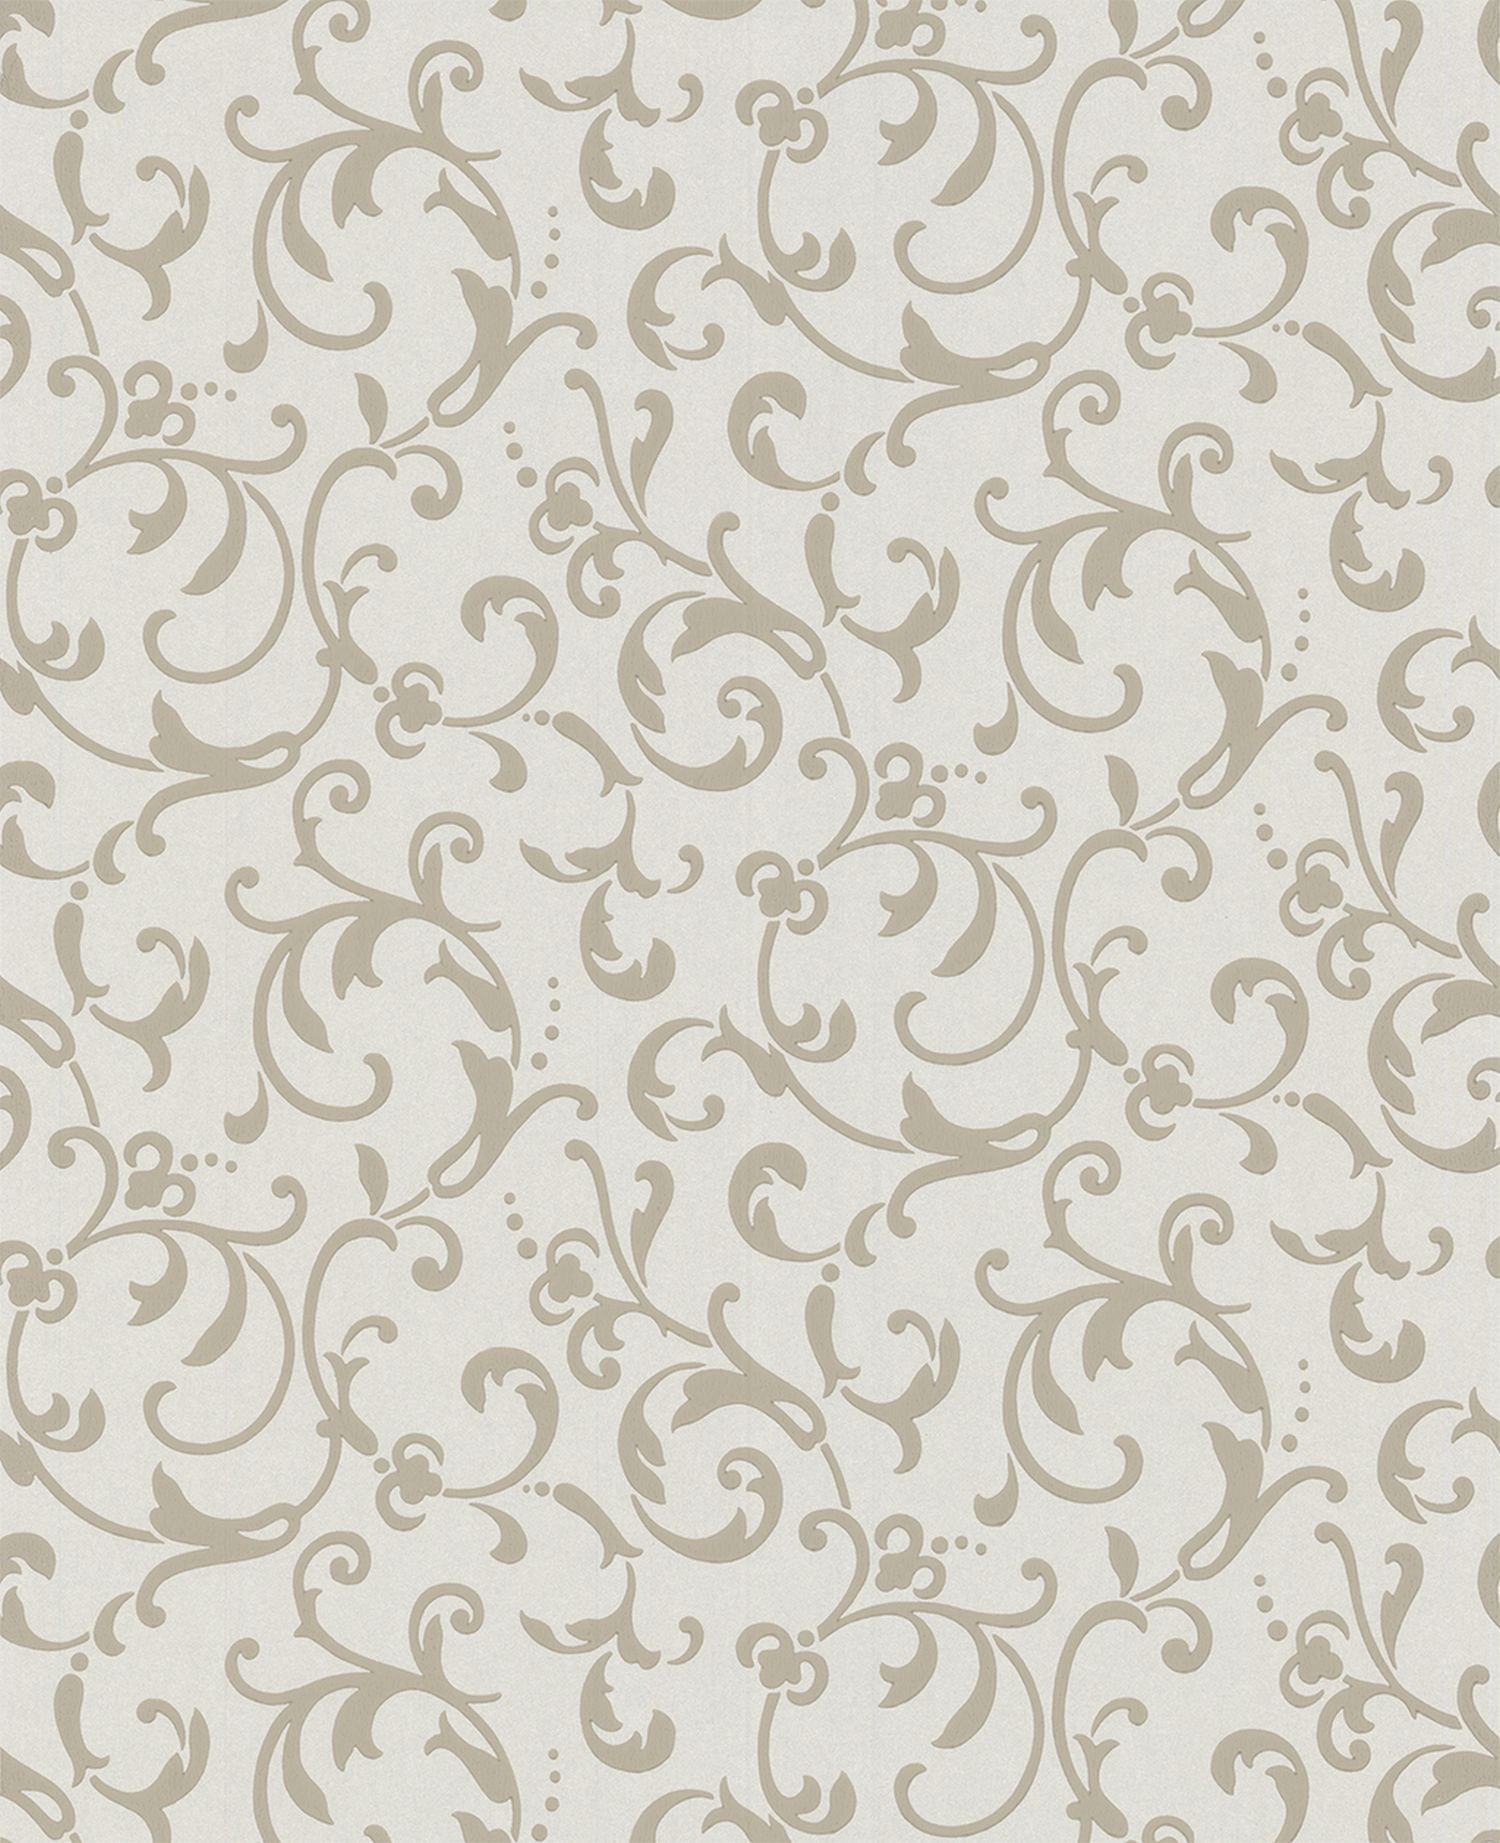 Light blue duckegg shimmer enchantment wallpaper